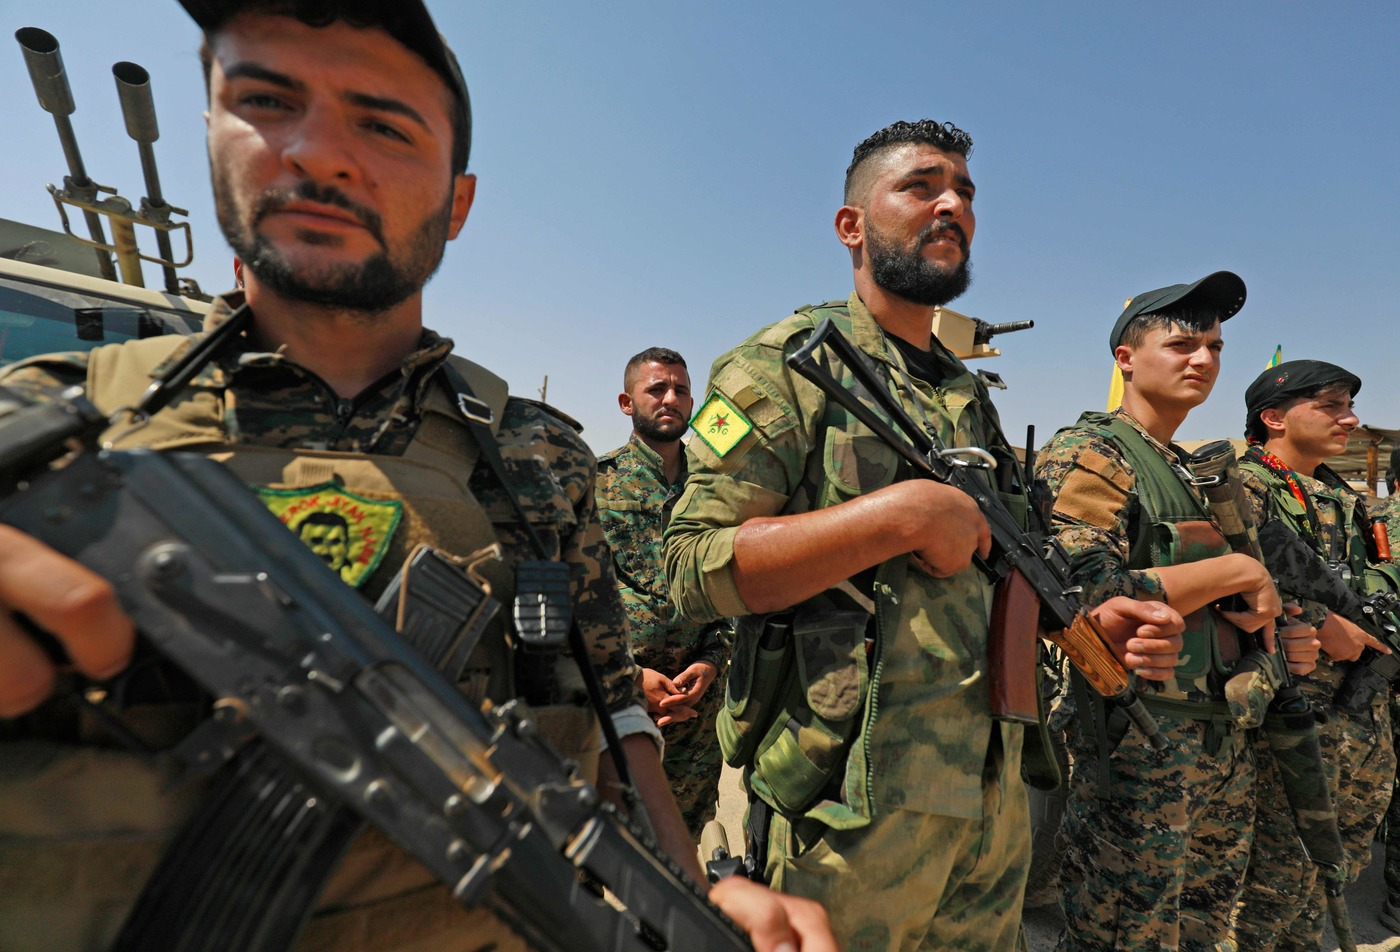 Members of the People's Protection Units (YPG), part of the of the Syrian Democratic Forces (SDF), gather in the town of Shadadi, about 60 kilometres (37 miles) south of the northeastern Syrian city of Hassakeh, on September 11, 2018. - The US-backed SDF, an alliance of Kurdish and Arab fighters, launched on September 10 an assault against a dwindling pocket of territory held by the Islamic State group in the town of Hajin in eastern Syria near the border with Iraq. (Photo by Delil SOULEIMAN / AFP)